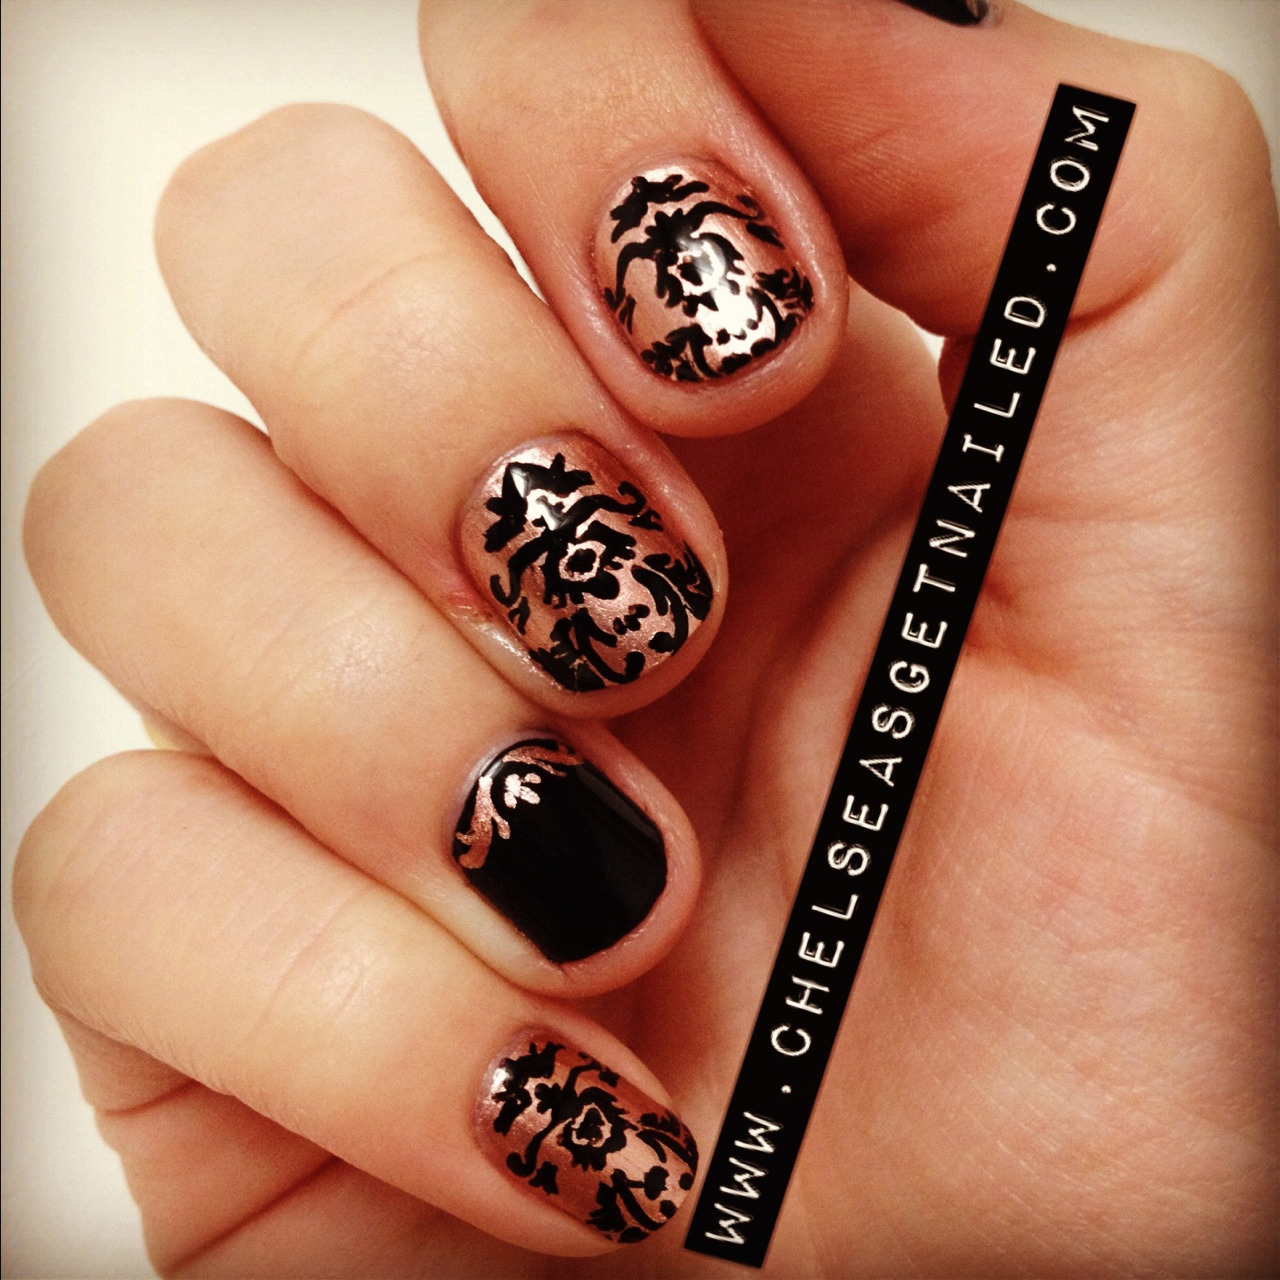 Brocade print nails!  What I Used: -Essie Penny Talk -Essie Licorice -Seche Vite top coat